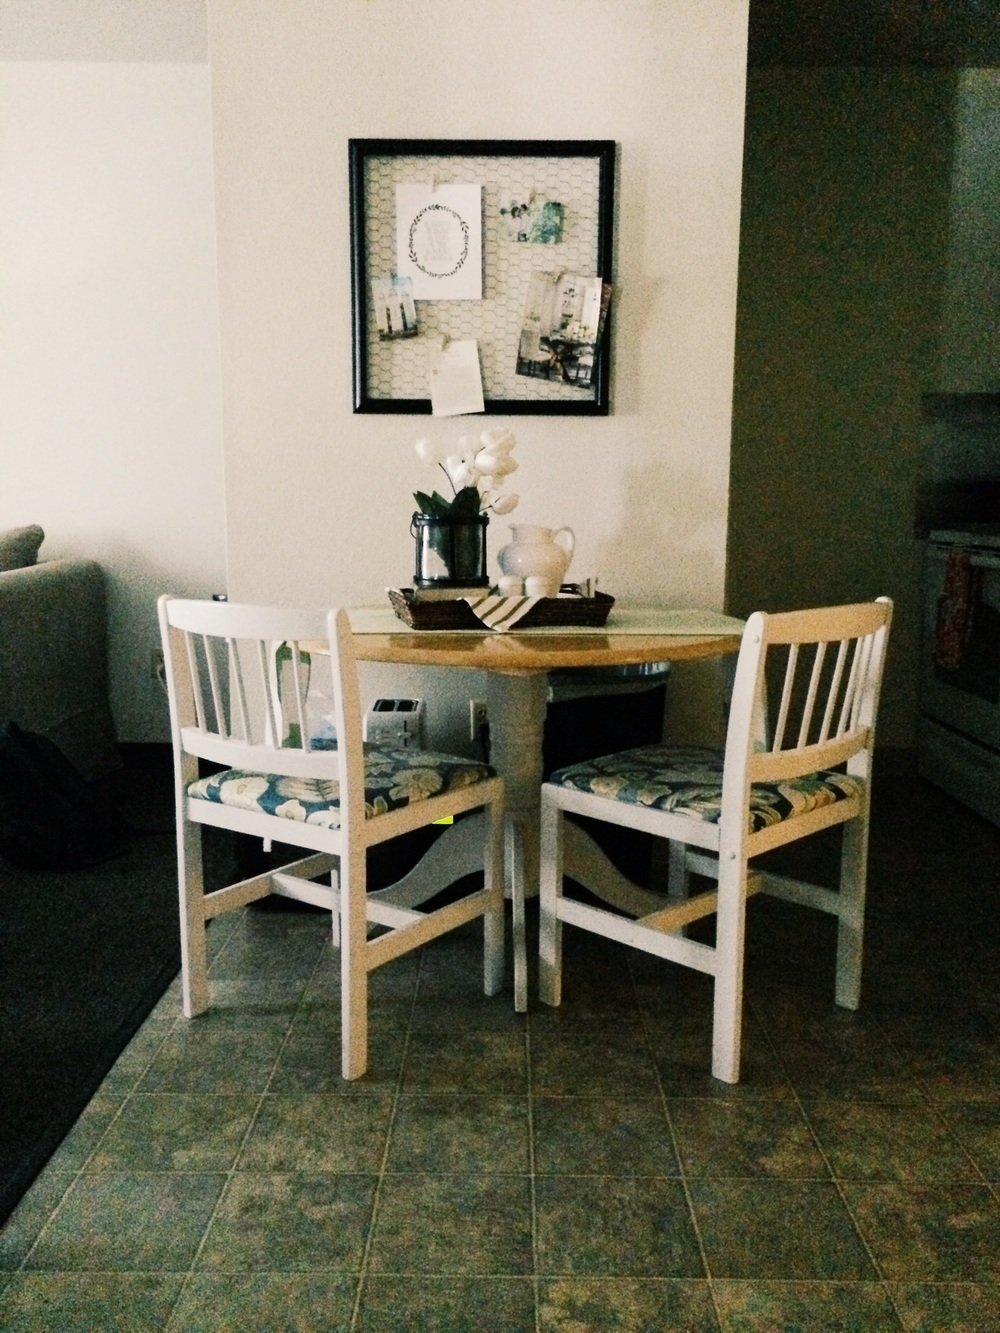 Cob refinished this table for me while we were engaged and it is one of my favorite things. <3